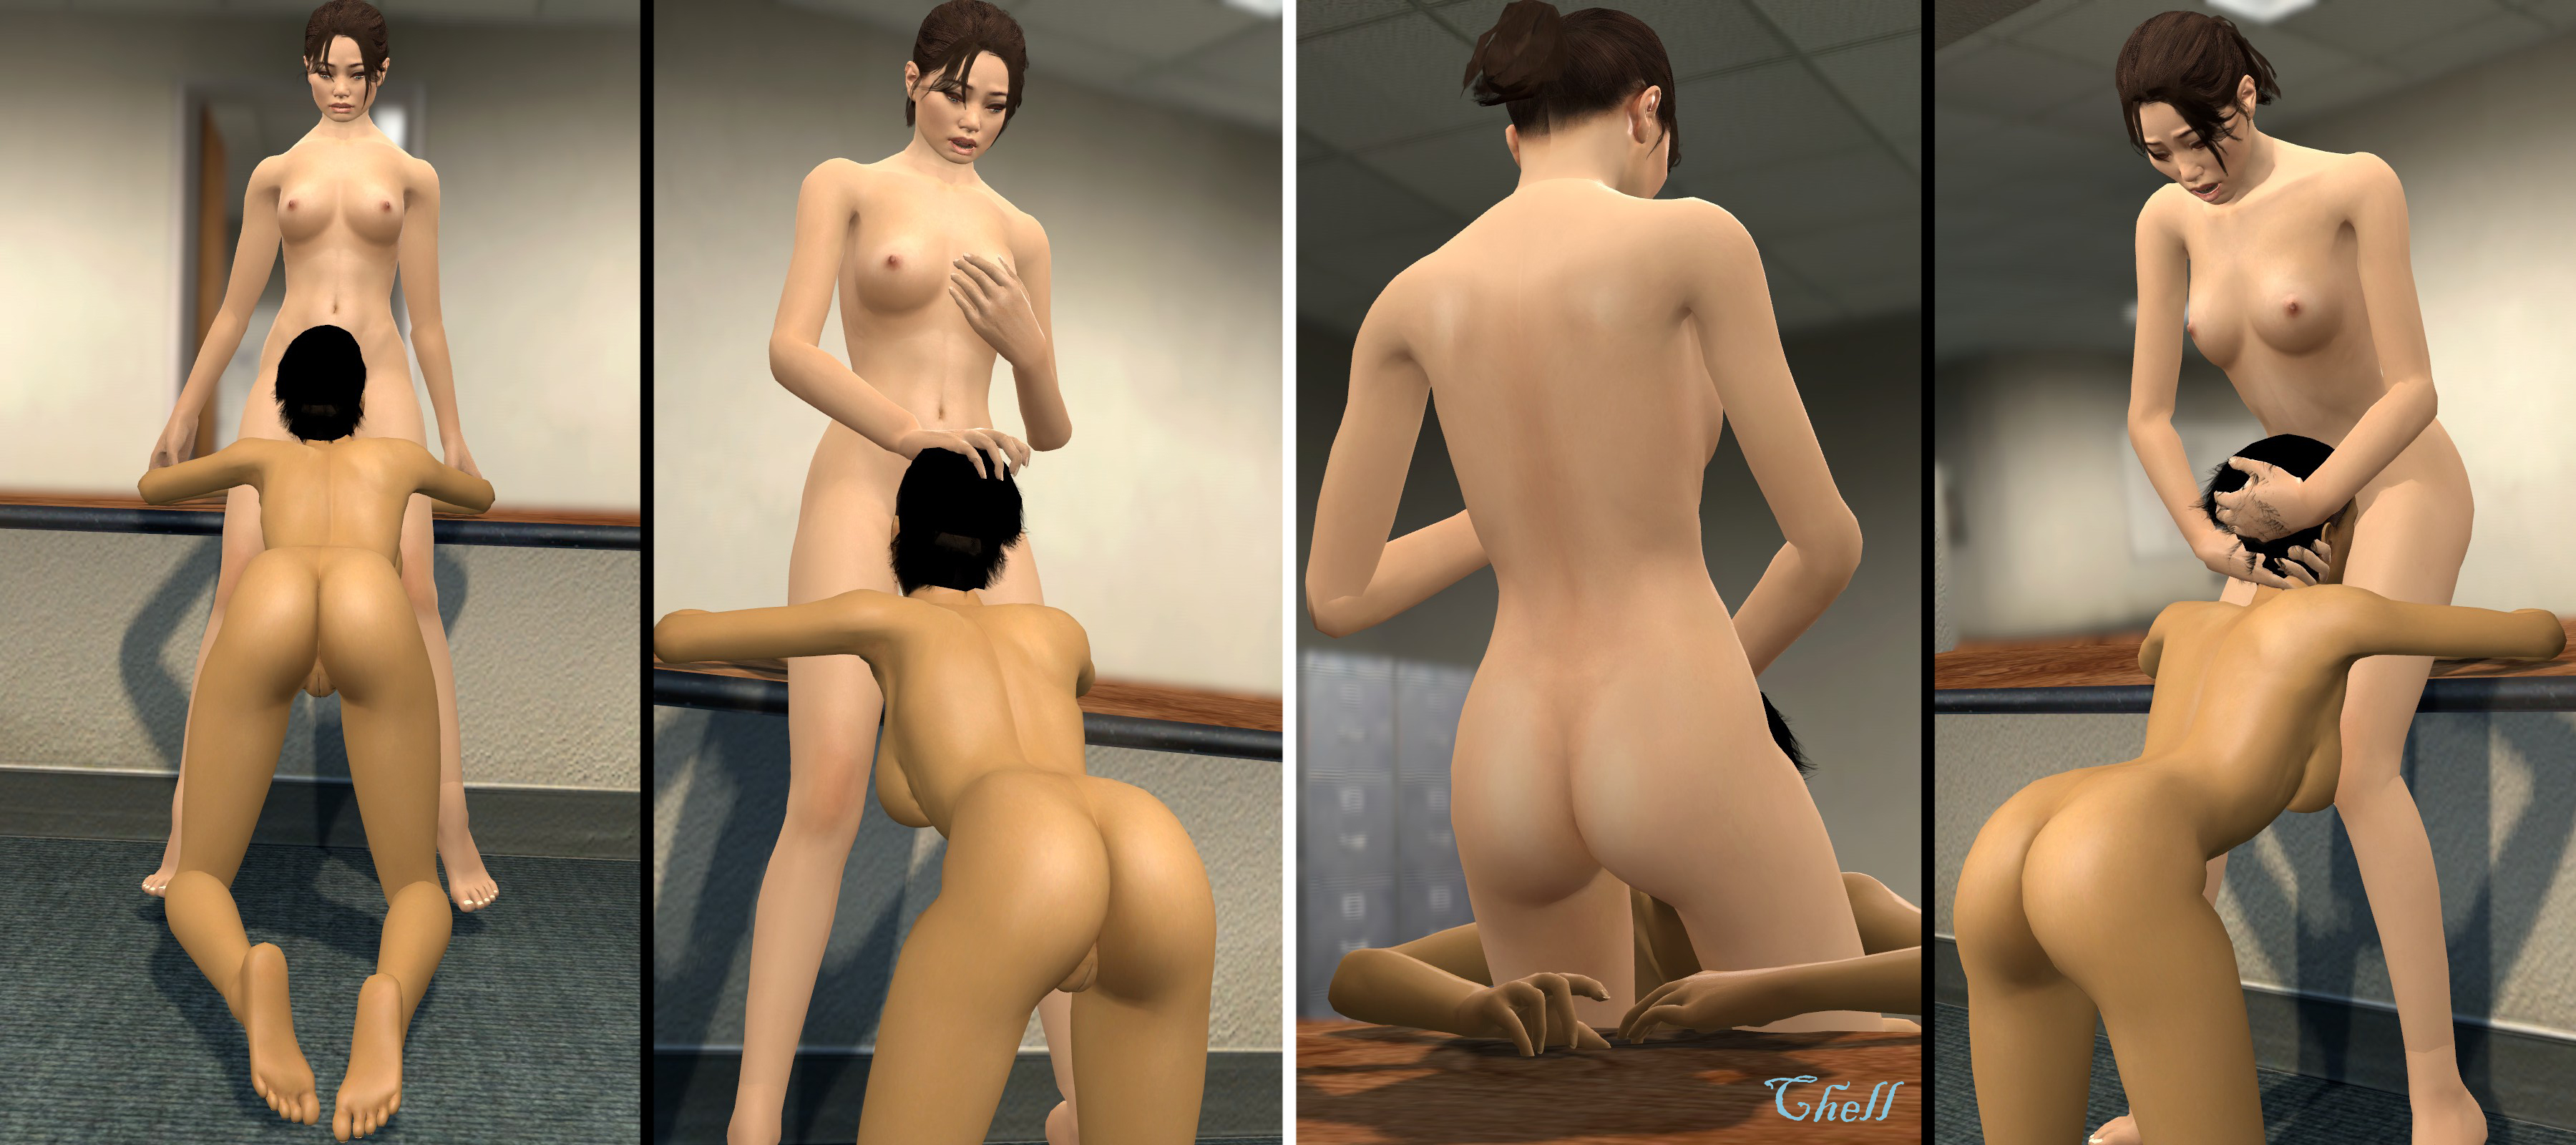 Half life 2 alex vance animated porn porno comics